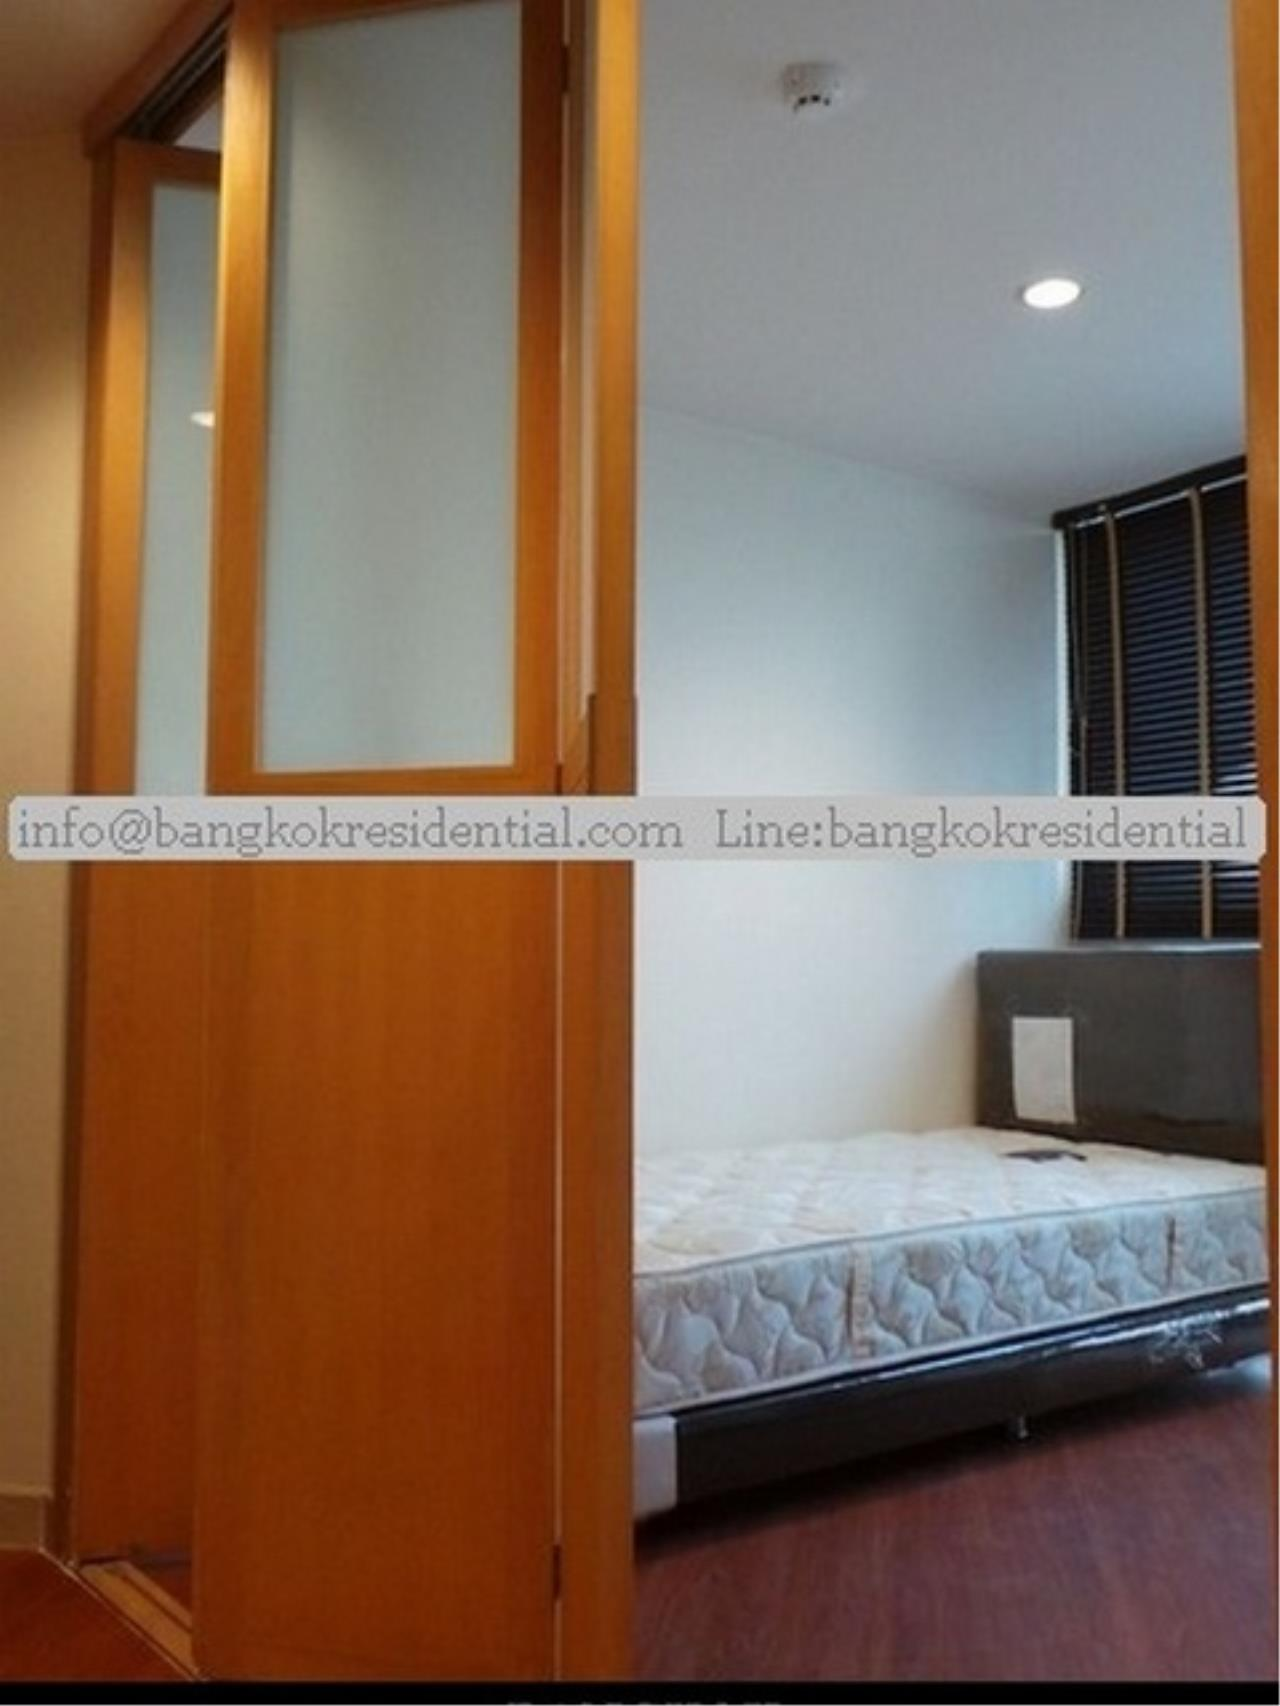 Bangkok Residential Agency's 3BR Tai Ping Tower For Rent (BR4448CD) 7